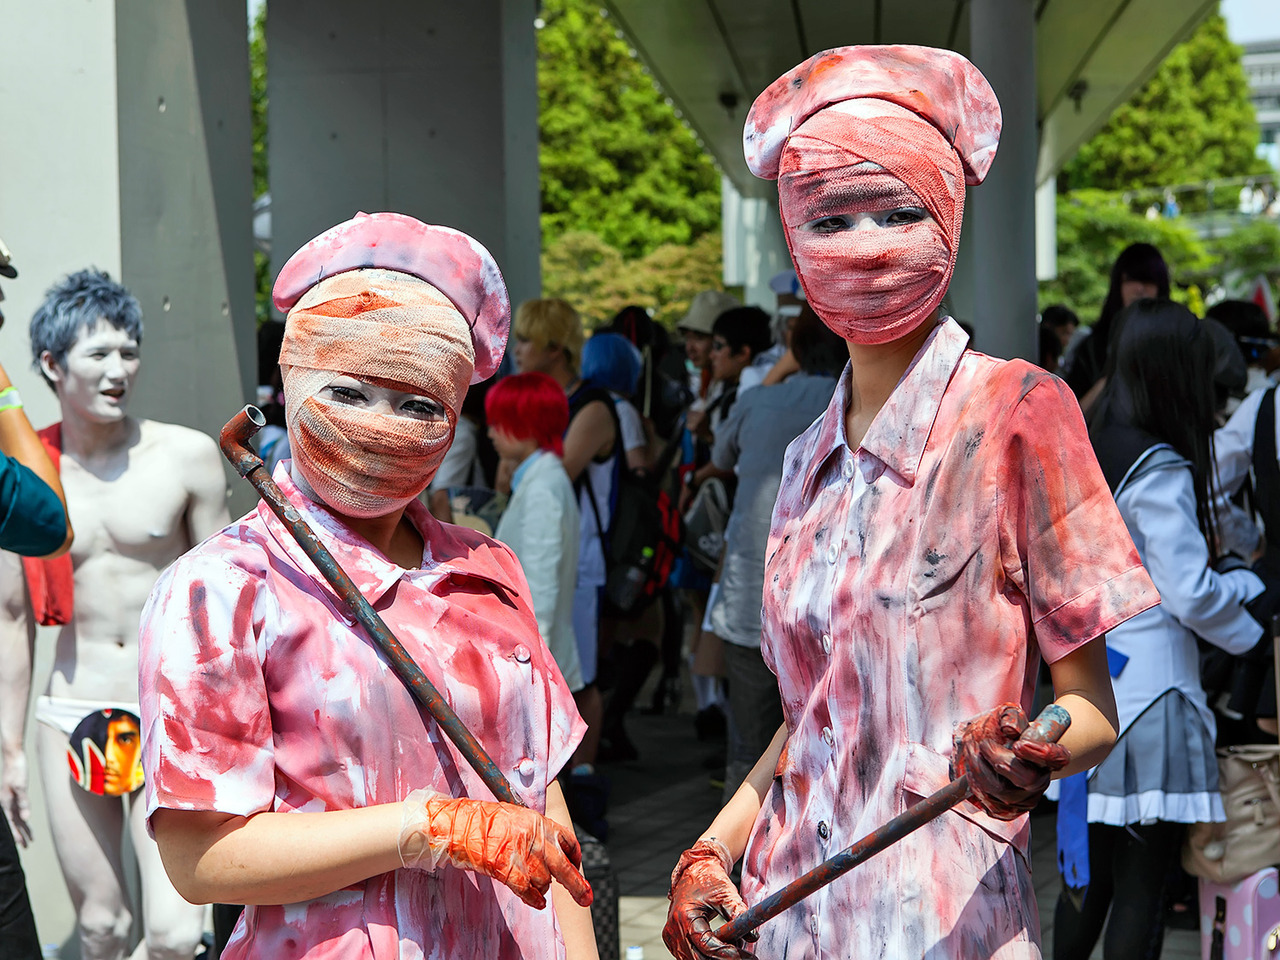 Silent Hill cosplay nurses today at Comiket in Tokyo.